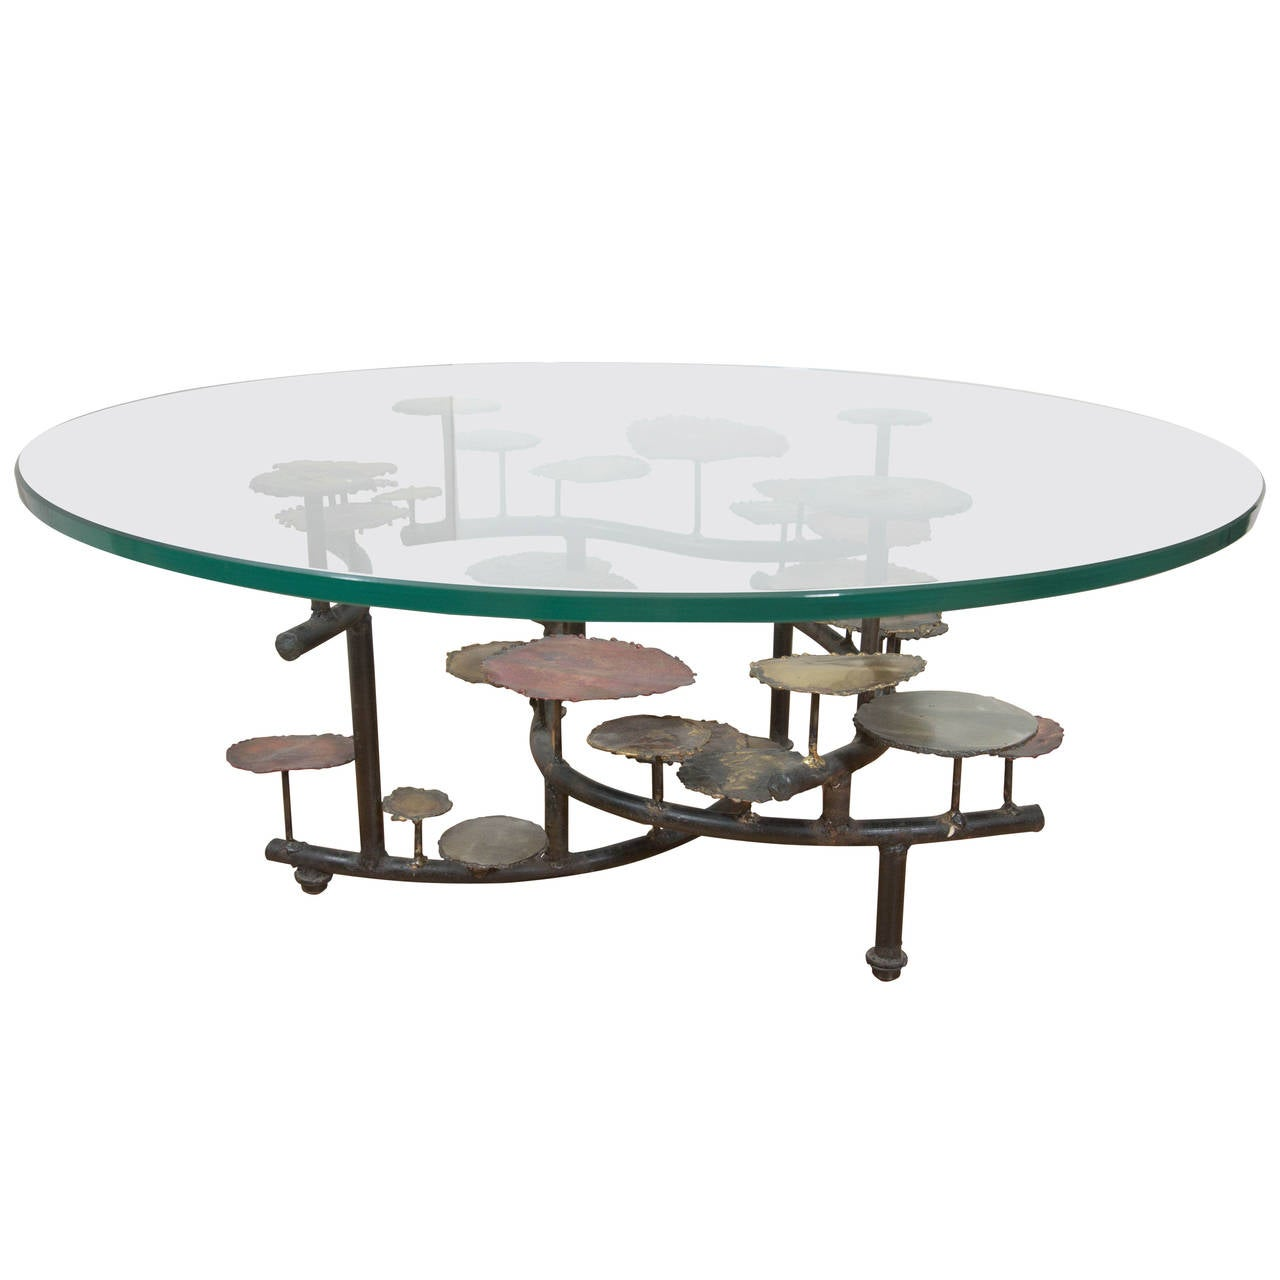 Silas Seandel Mixed Metal Lily Pad Coffee Table With Round Glass Top For Sale At 1stdibs